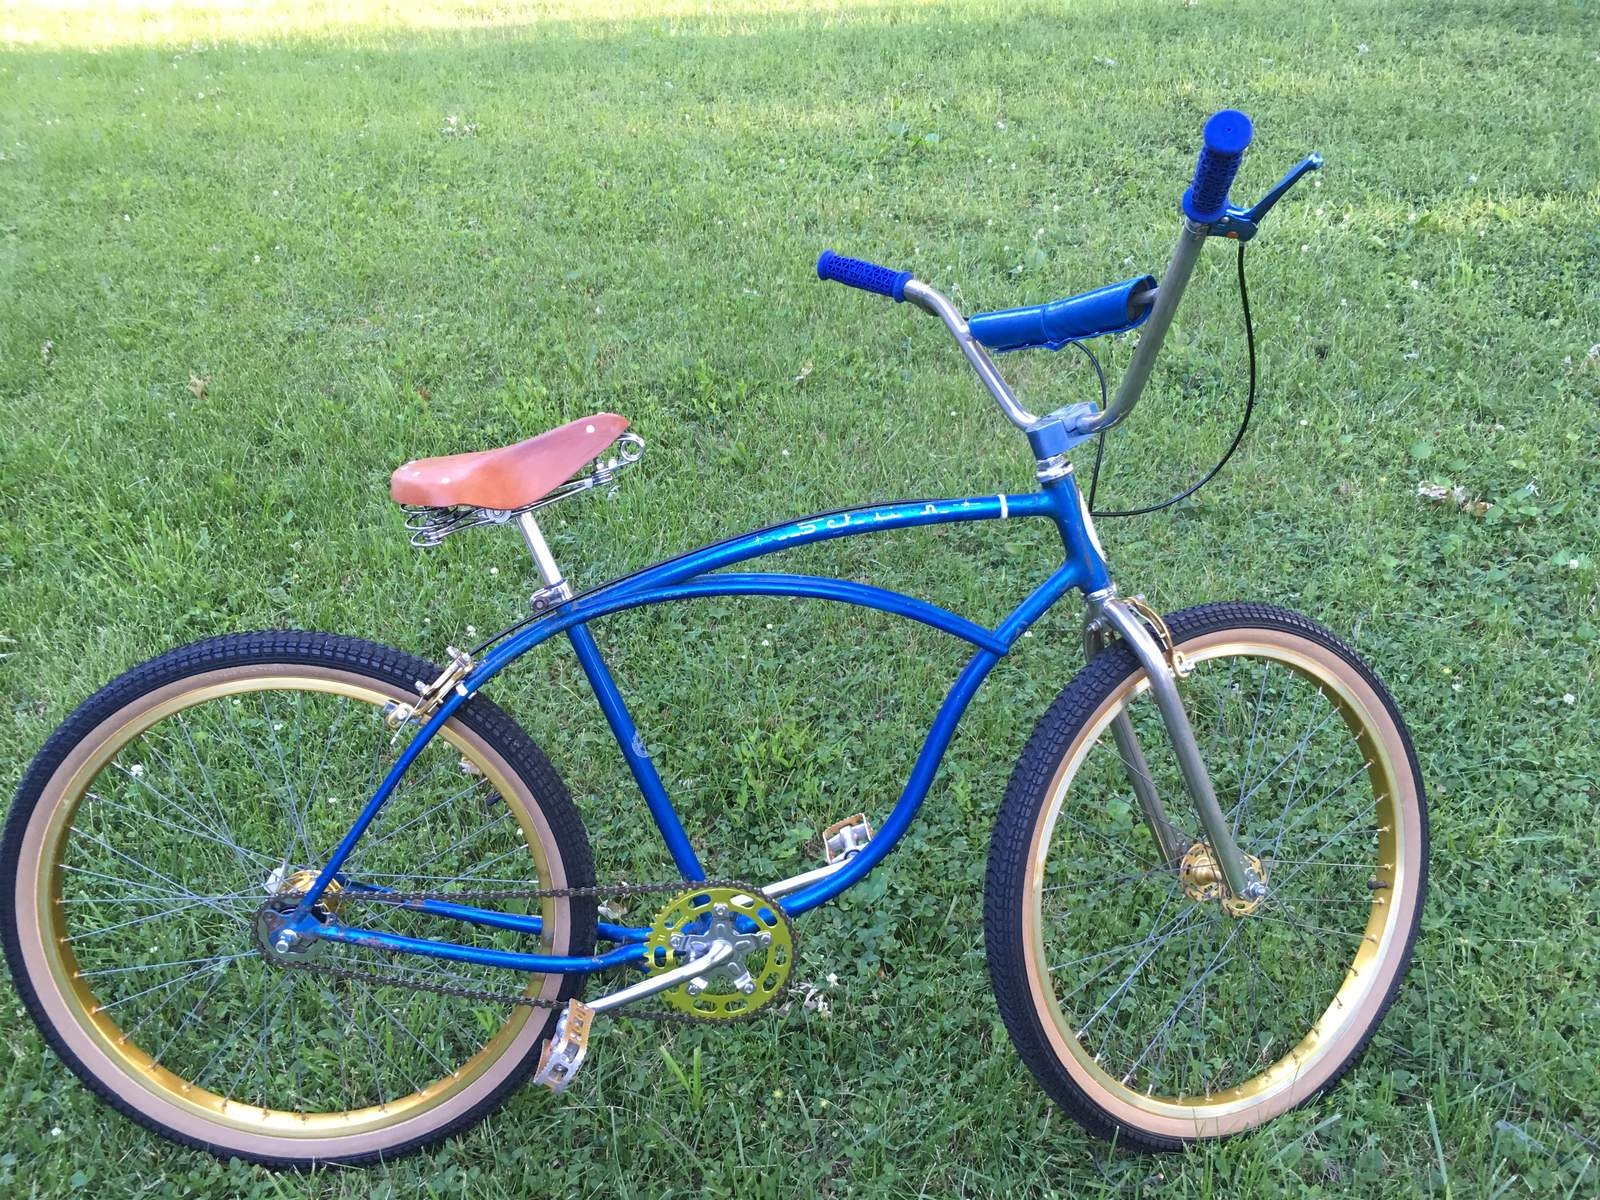 Is this a Cruiser, Strandie, or Klunker? - BMXmuseum com Forums